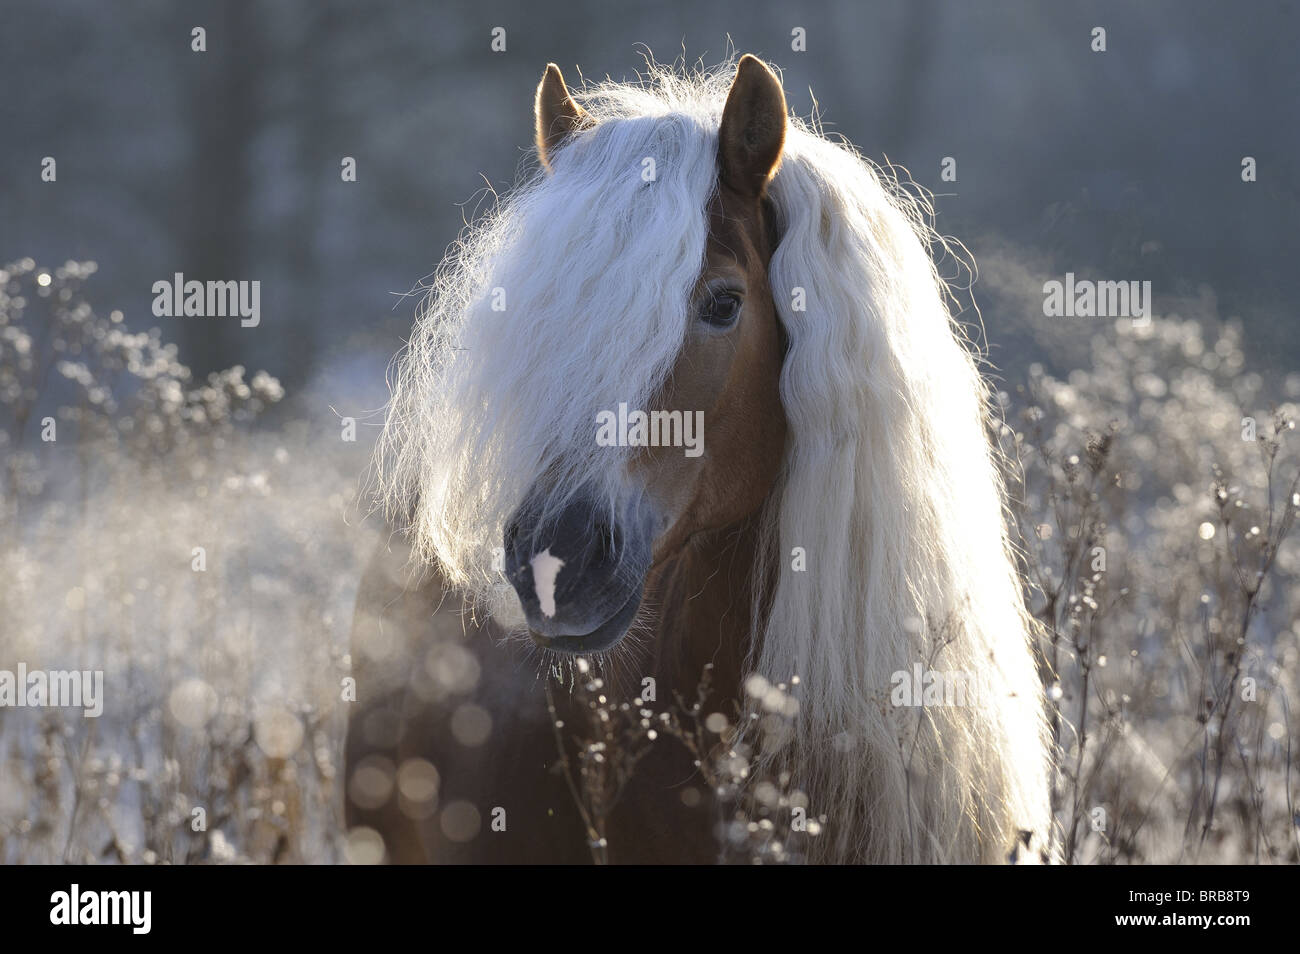 Haflinger Horse Equus ferus caballus portrait of a stallion with Stock Photo Royalty Free Image 31595881  Alamy